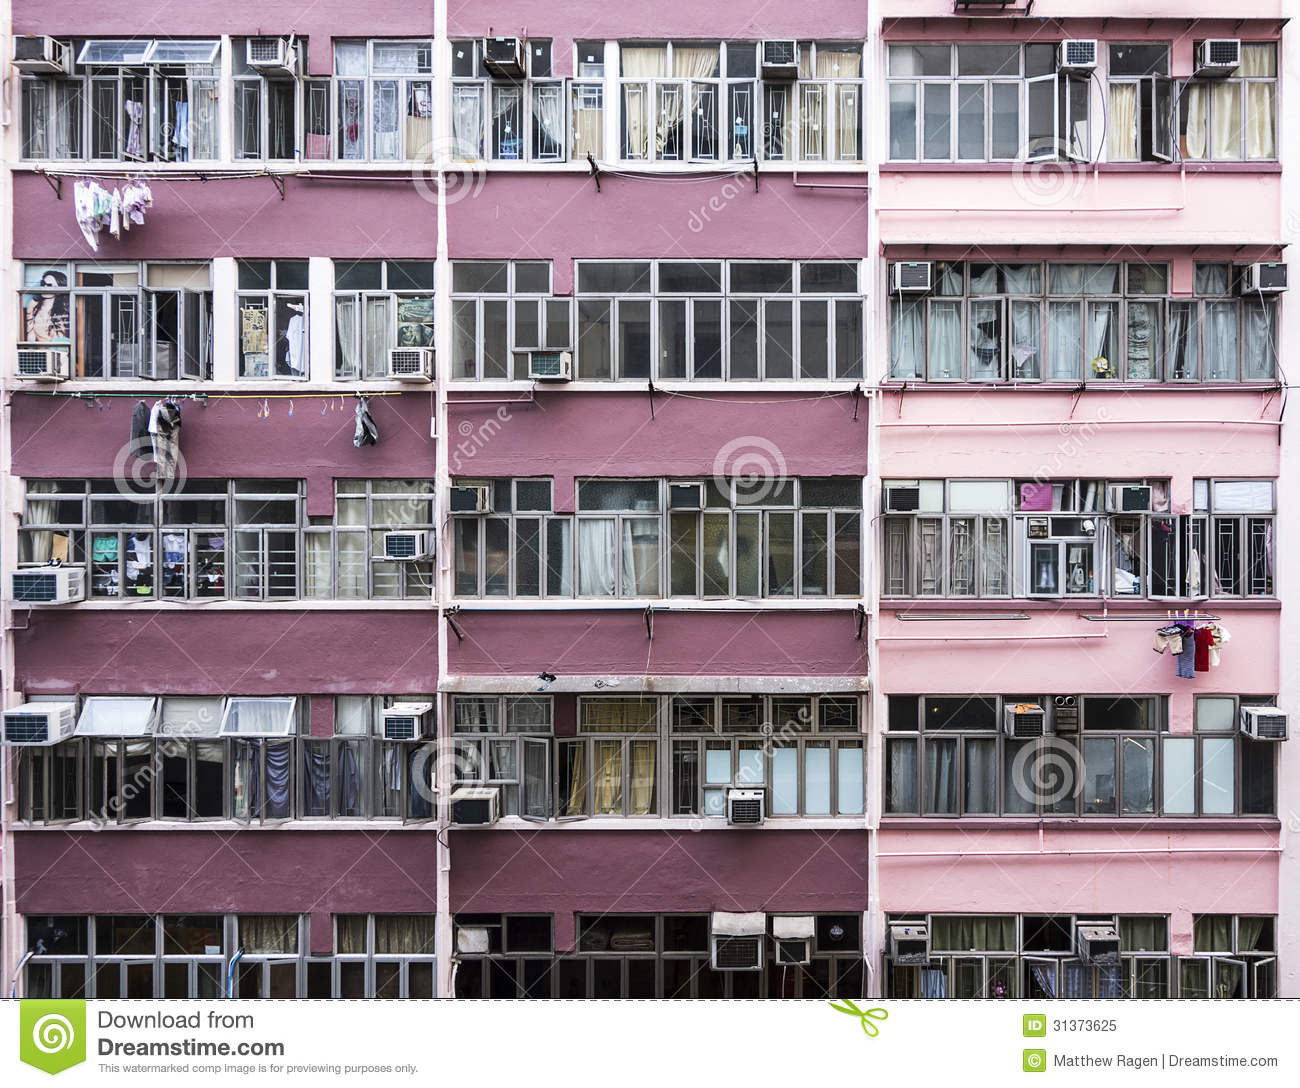 Hong Kong Apartments: Hong Kong Apartments Royalty Free Stock Photo